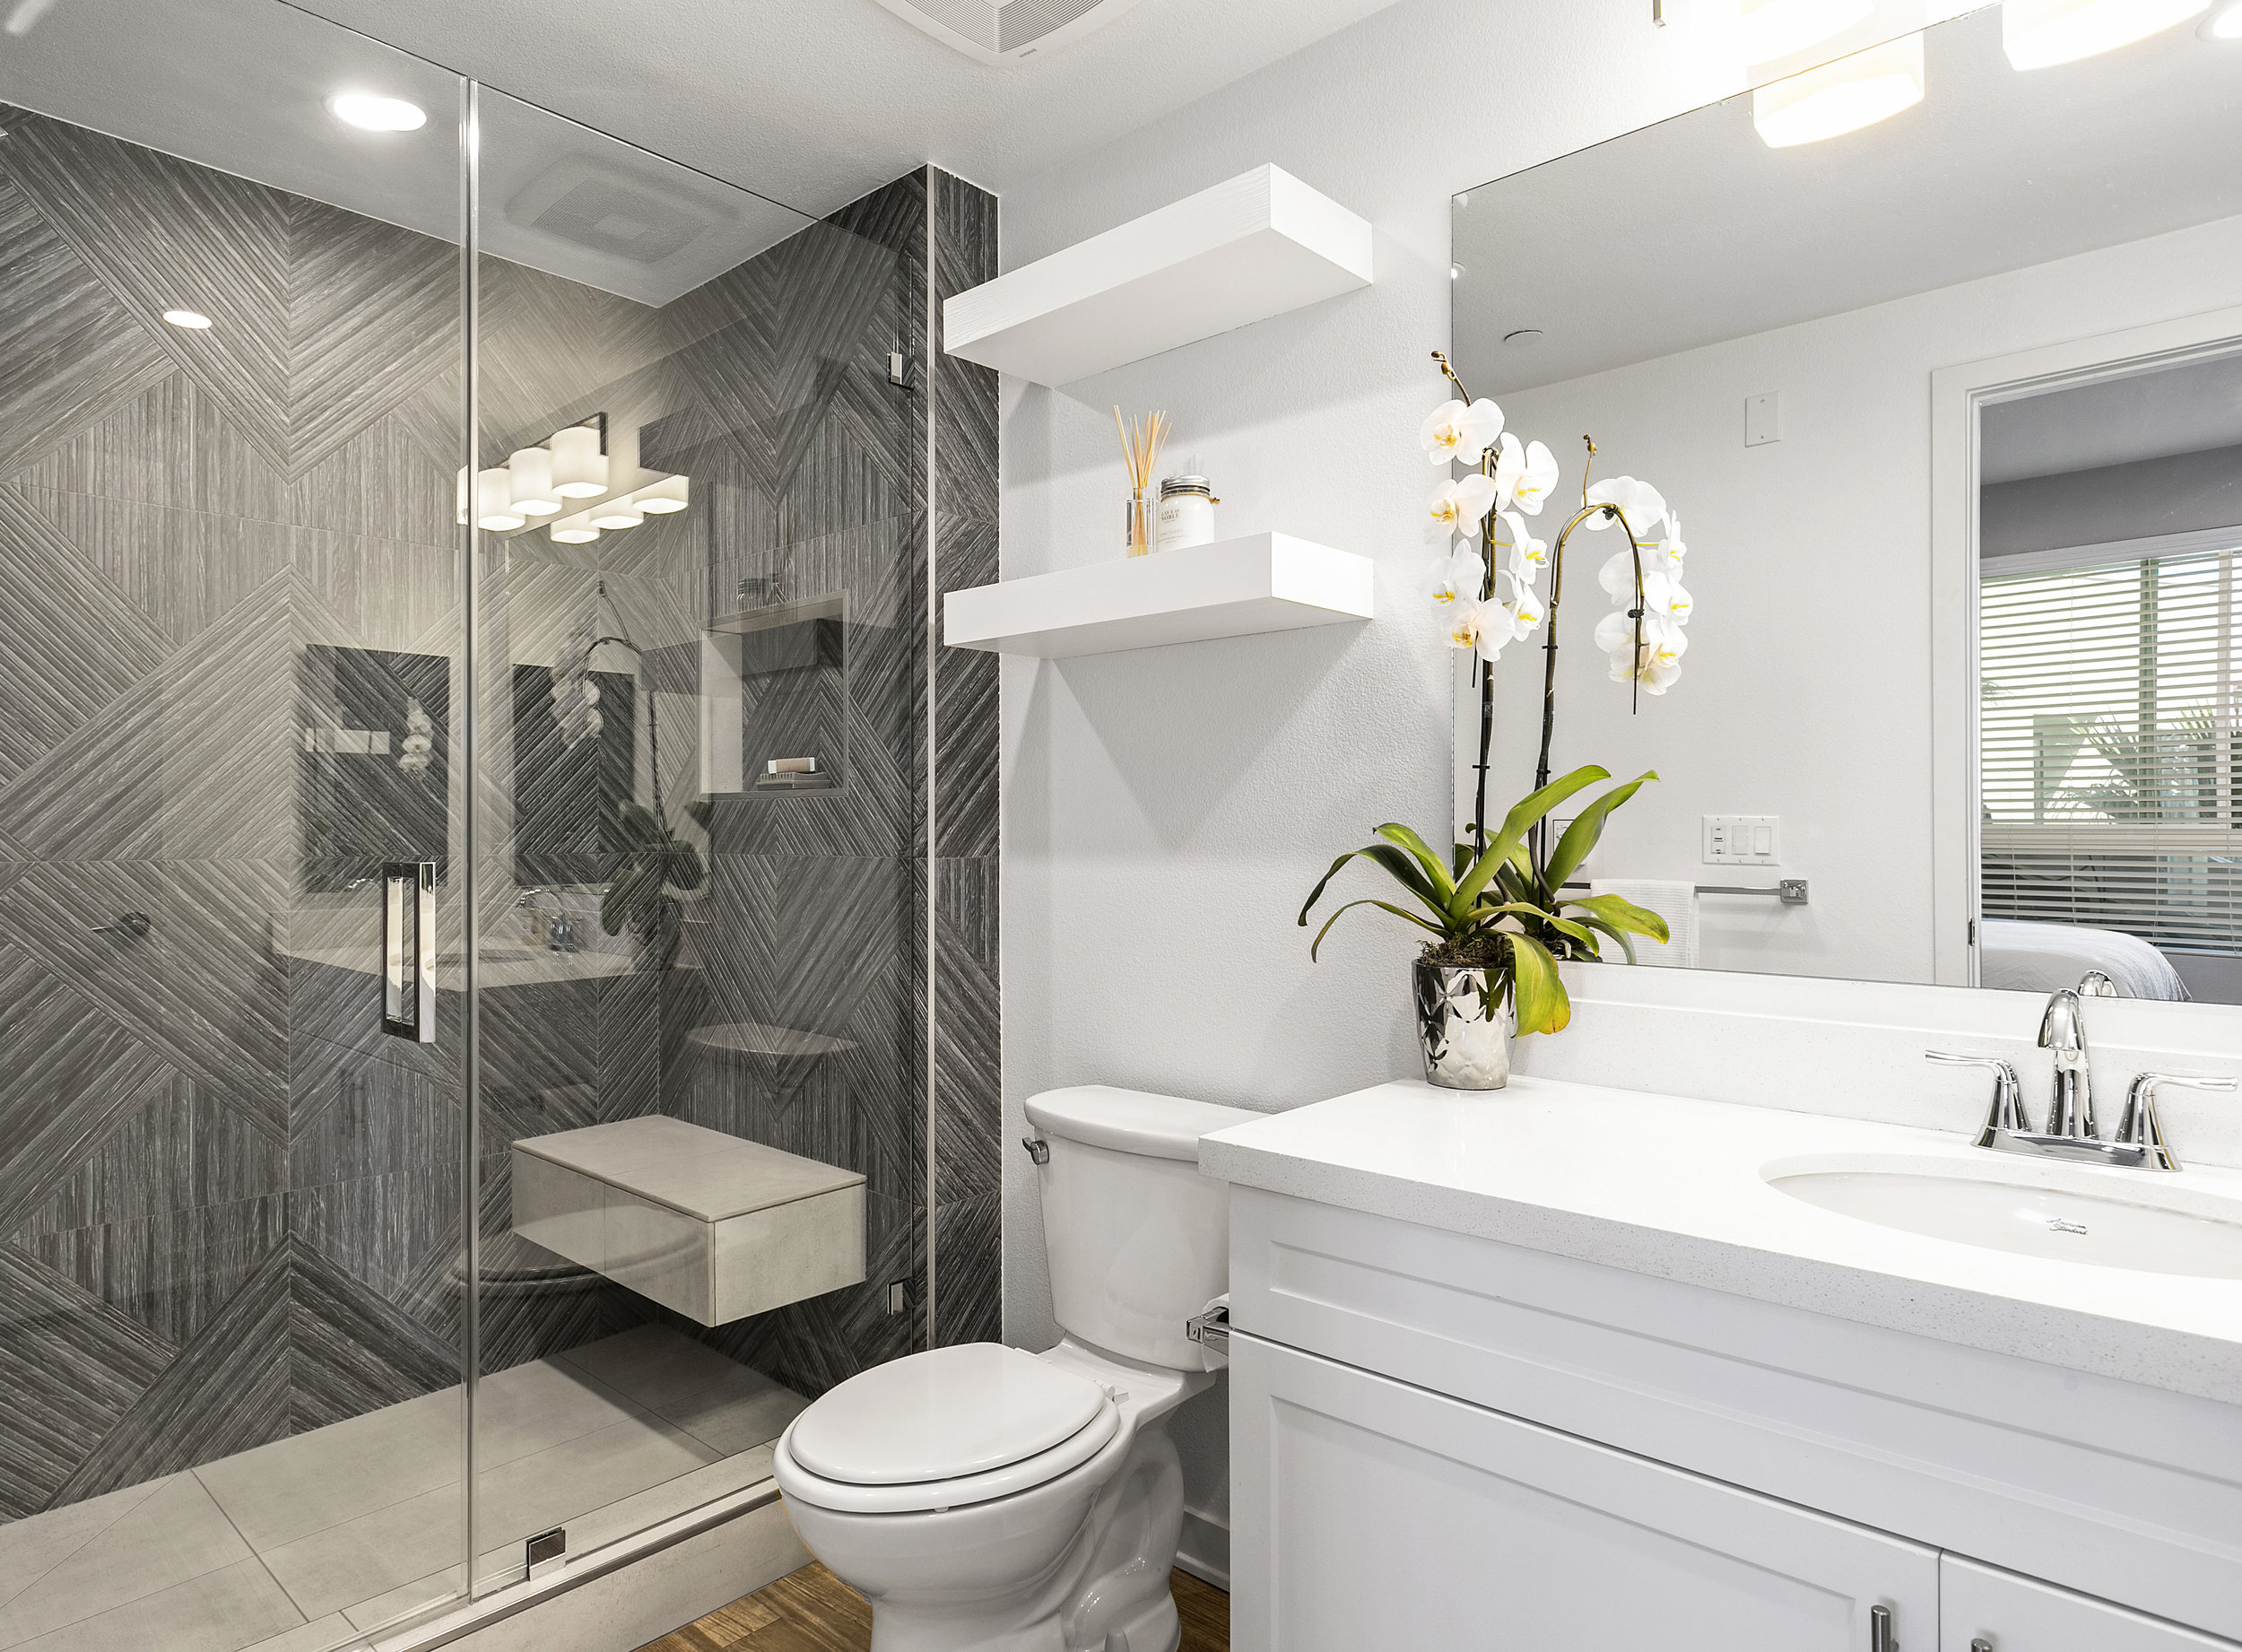 Playa Vista bathroom and kitchen remodel 10 BIG.jpg